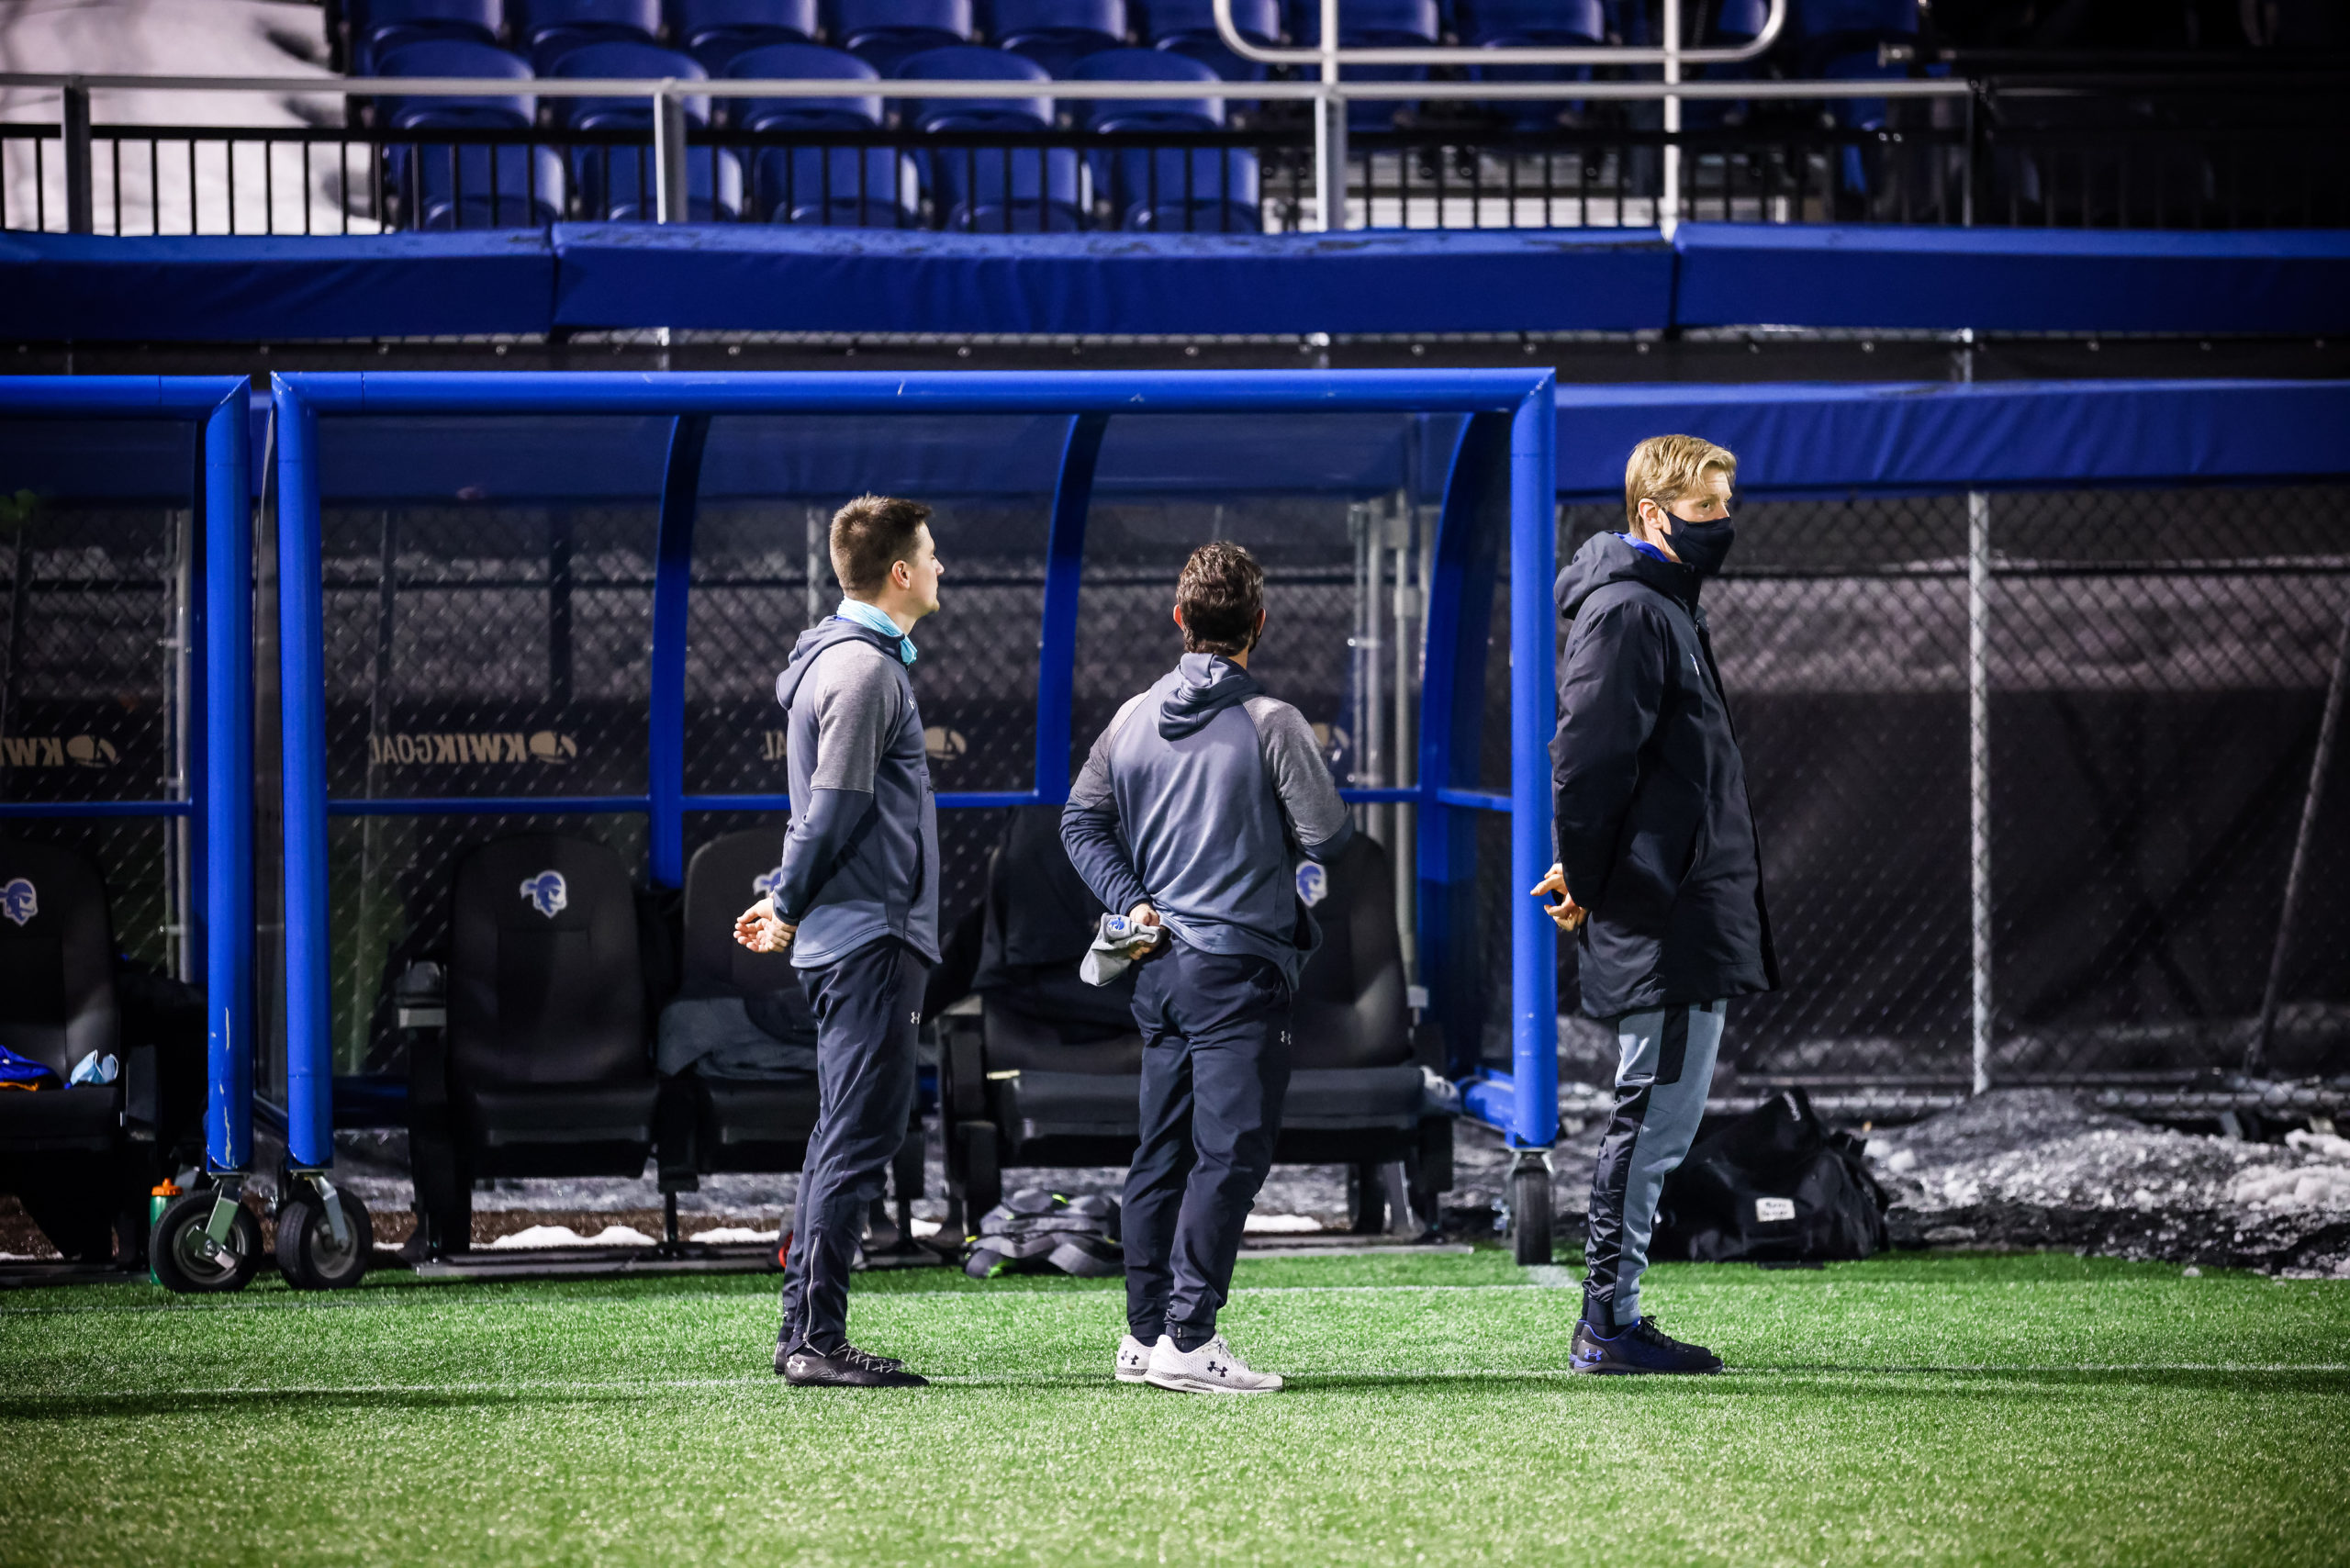 Andreas Lindberg and his coaching staff were named Coaching Staff of the Year for the Big East, and earned that distinction for the entire east region as well. They are also in the running for National Coaching Staff of the Year.